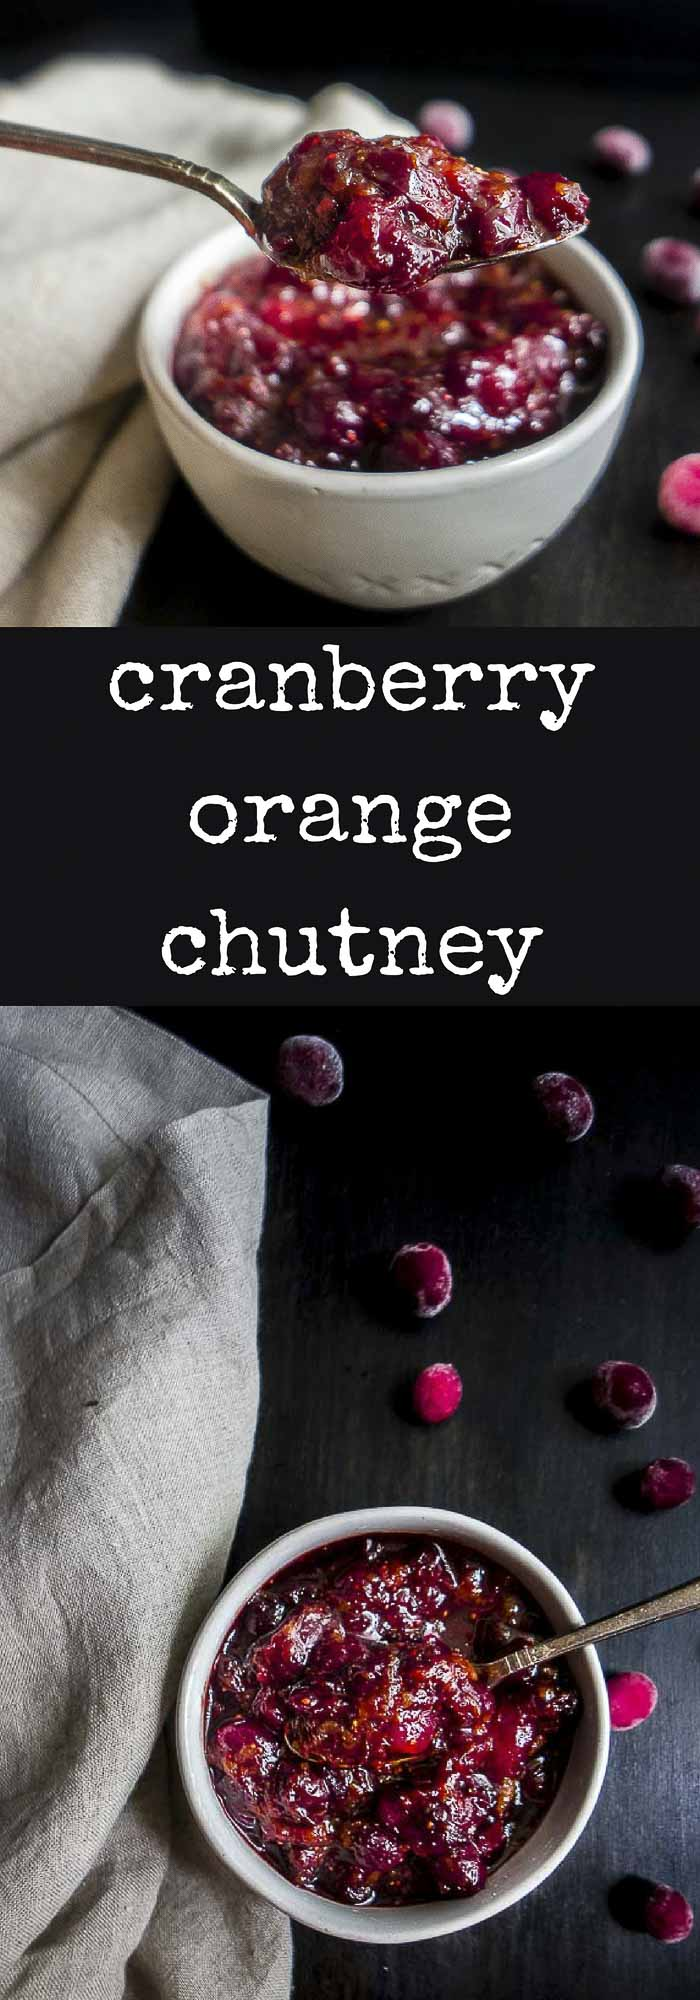 This 20 Minute Cranberry Orange Chutney recipe has the perfect combination of sweet, tart and savory flavors for a delicious condiment! #thanksgivingrecipes #cranberries, #frozencranberries, #cranberriesforallseasonsorange cranberry sauce | orange cranberry chutney | cranberry ginger chutney | cranberry relish | cranberry jam | cranberry sauce | cranberry chutney | holiday recipes | thanksgiving recipes